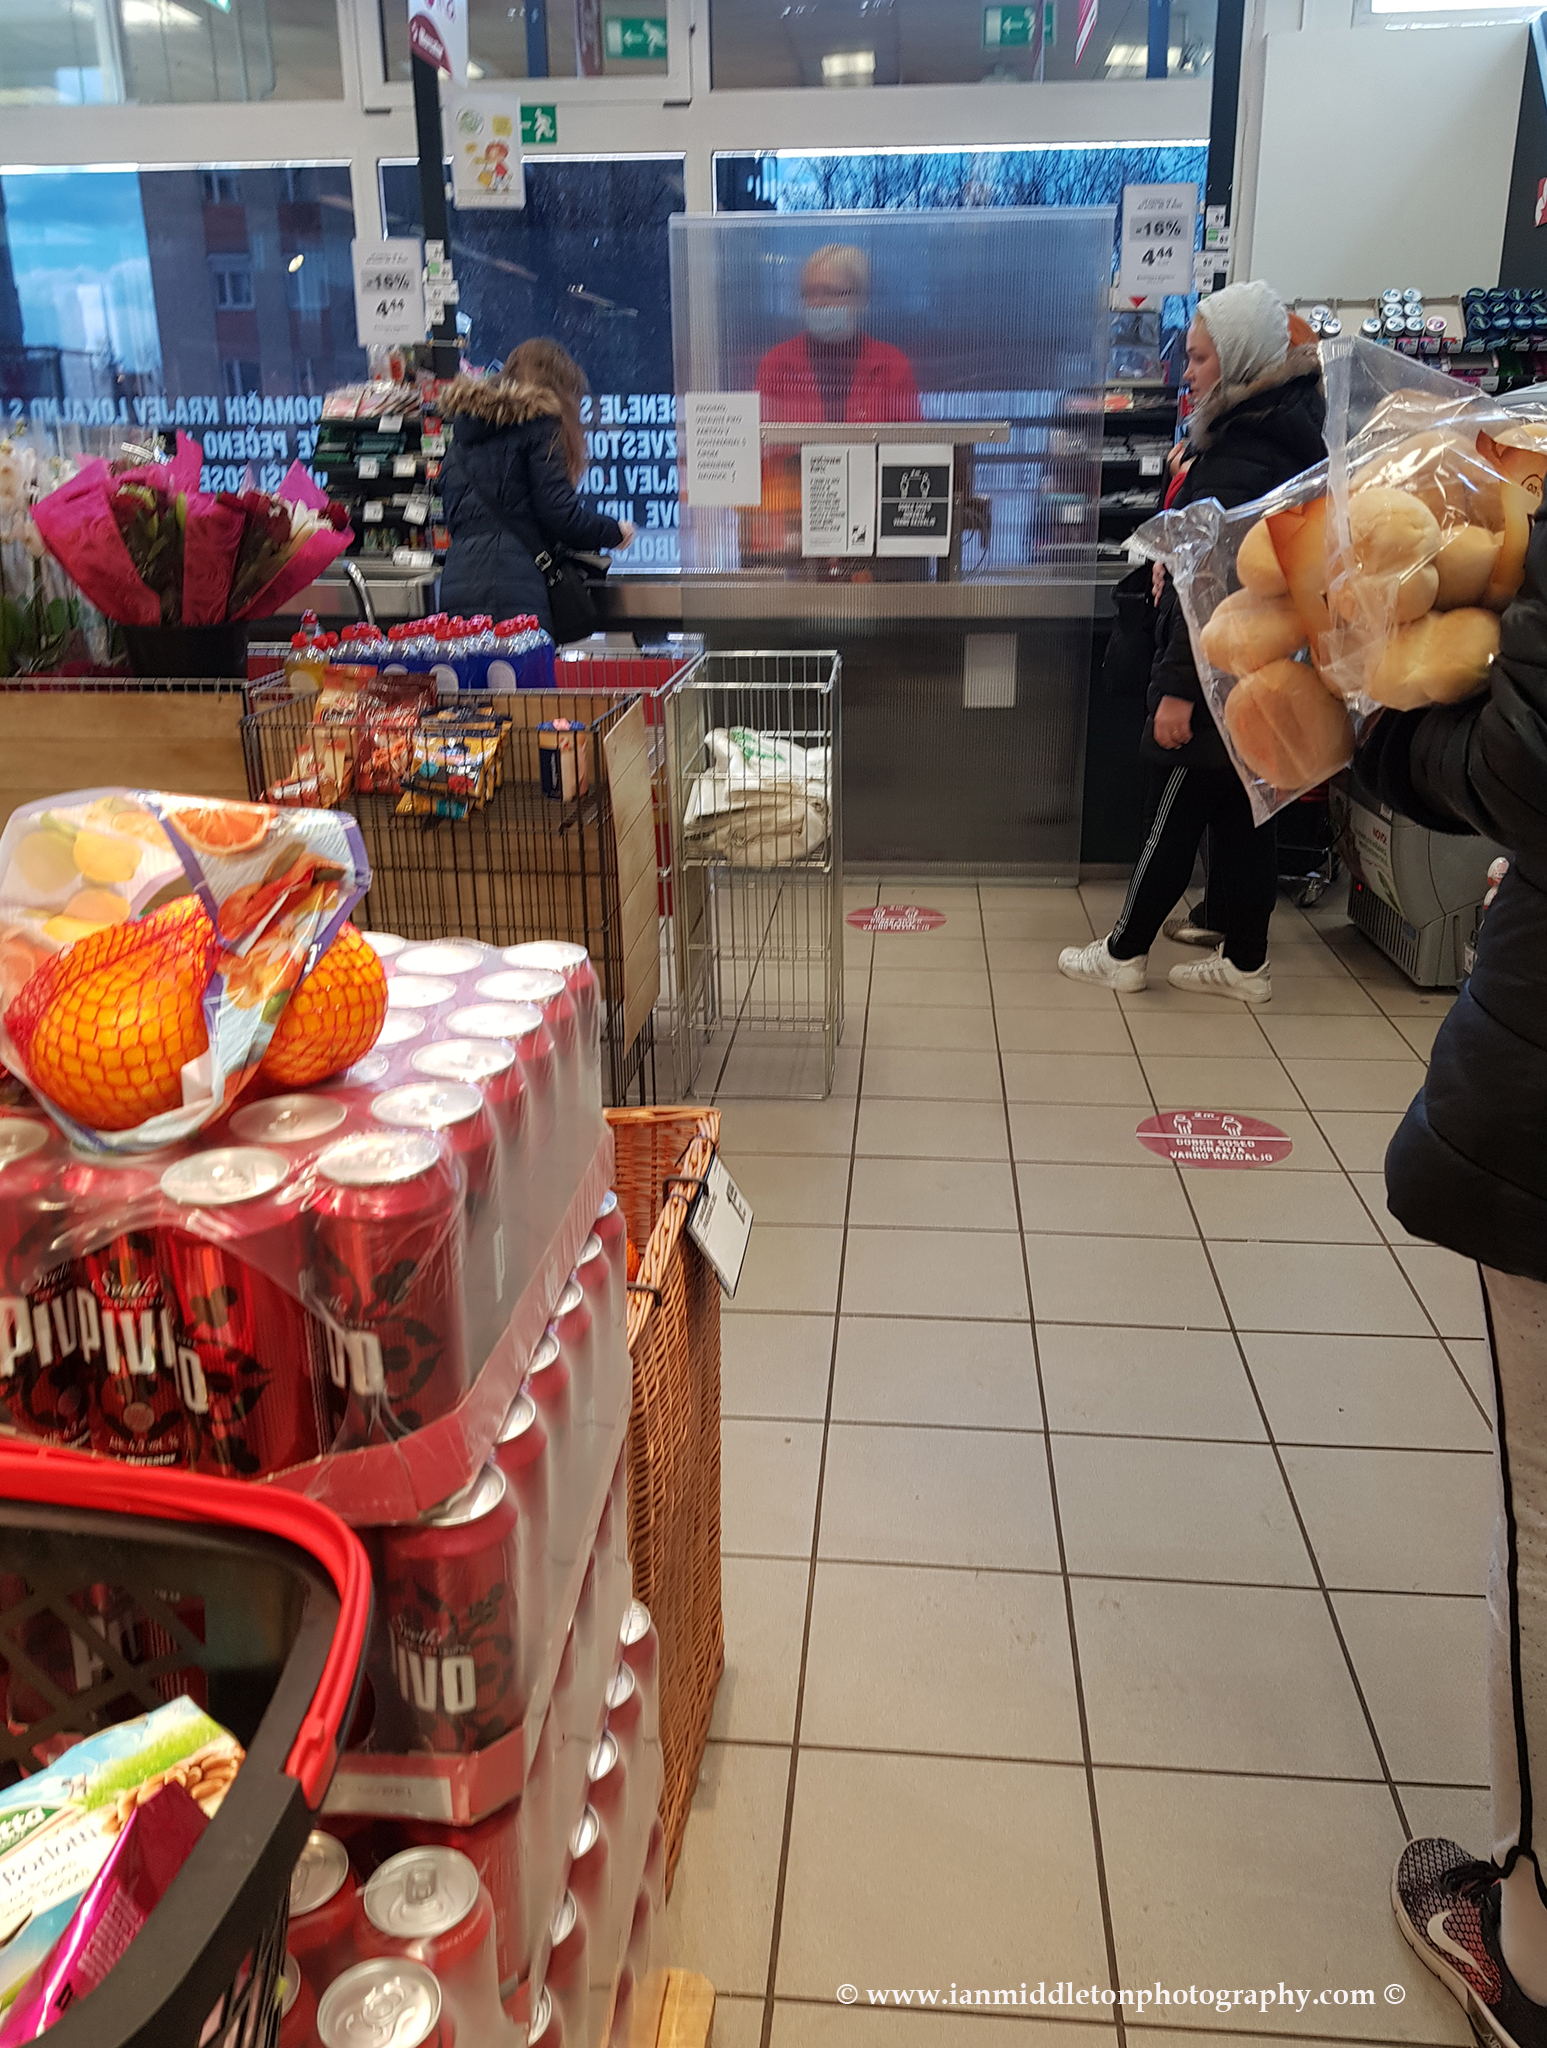 Queuing at the till in Mercator with the cashier behind a screen and wearing a mask. This is in a suburb of Ljubljana, Slovenia. Mercator is Slovenia's largest supermarket chain. Taken 23-3-2020